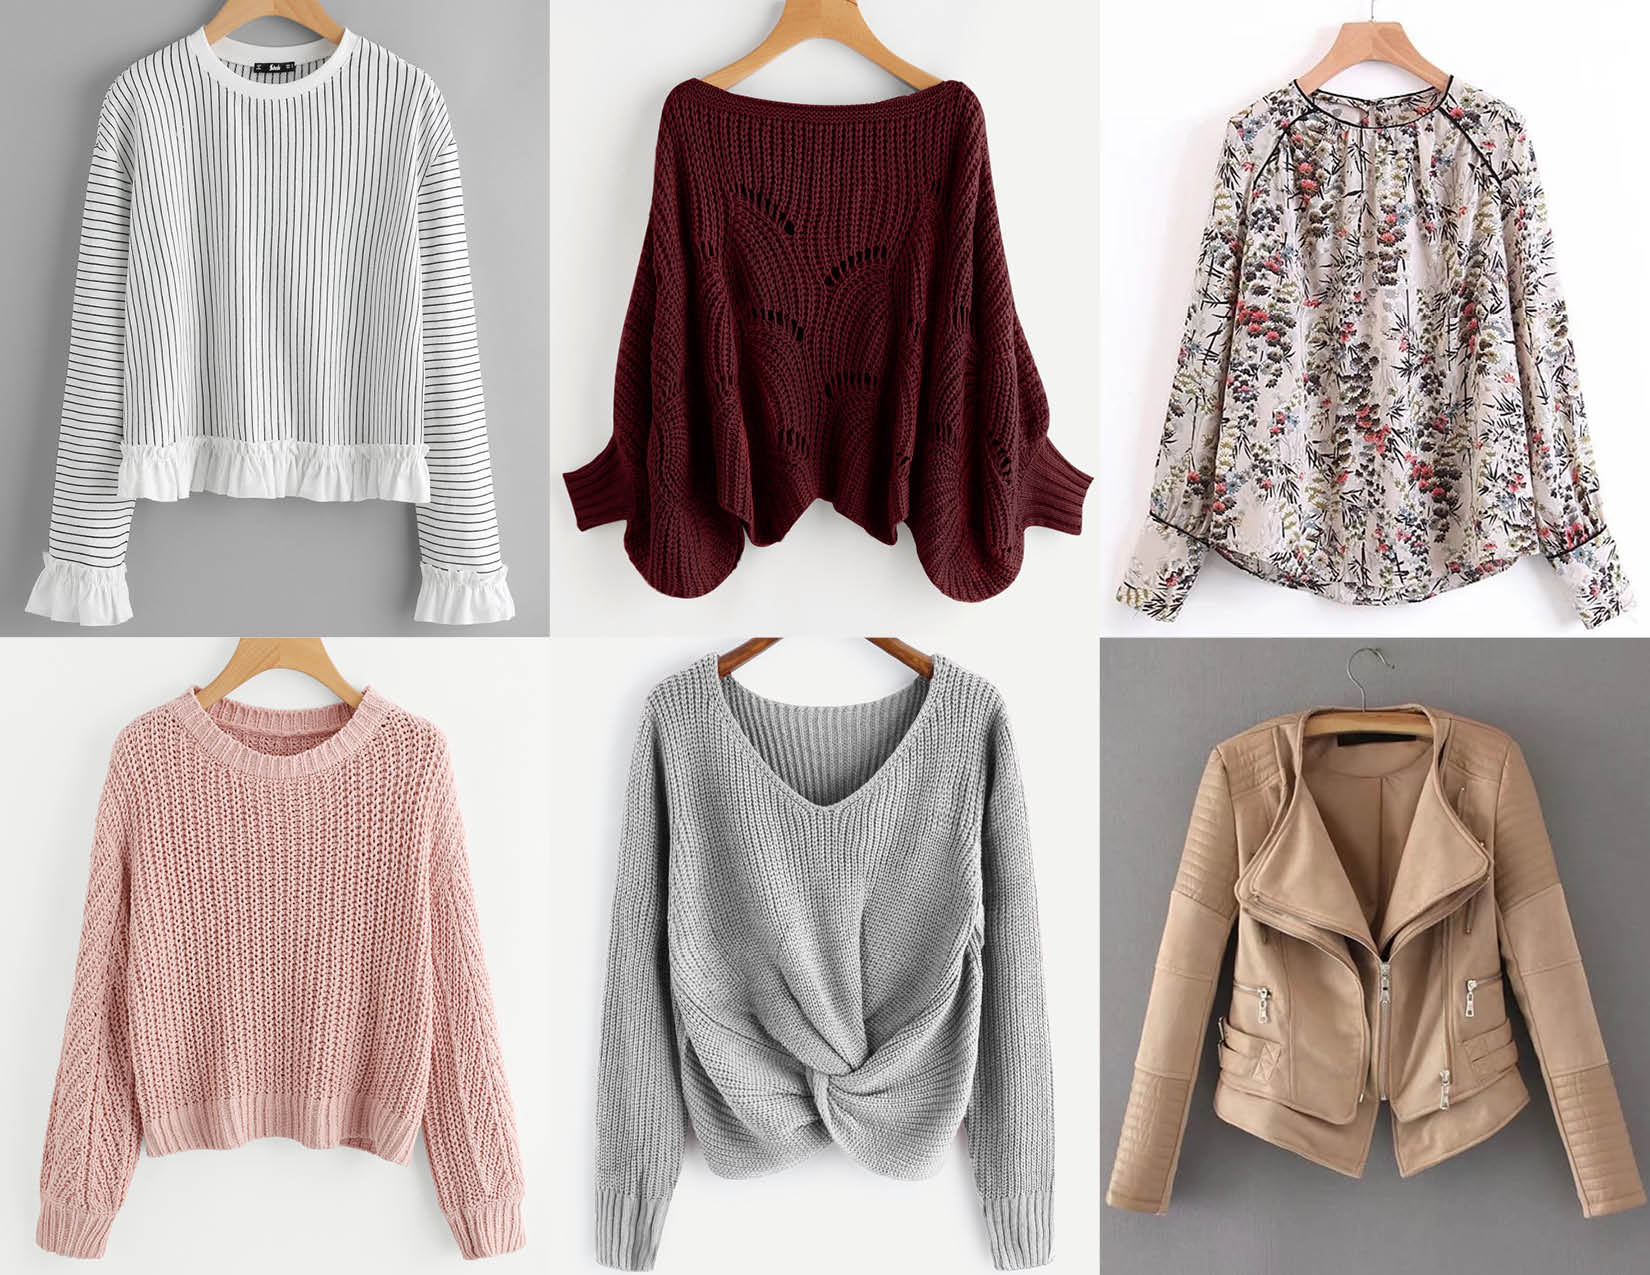 c47333bc1fdf Layered Up - Fall SheIn Favorites – RG Daily